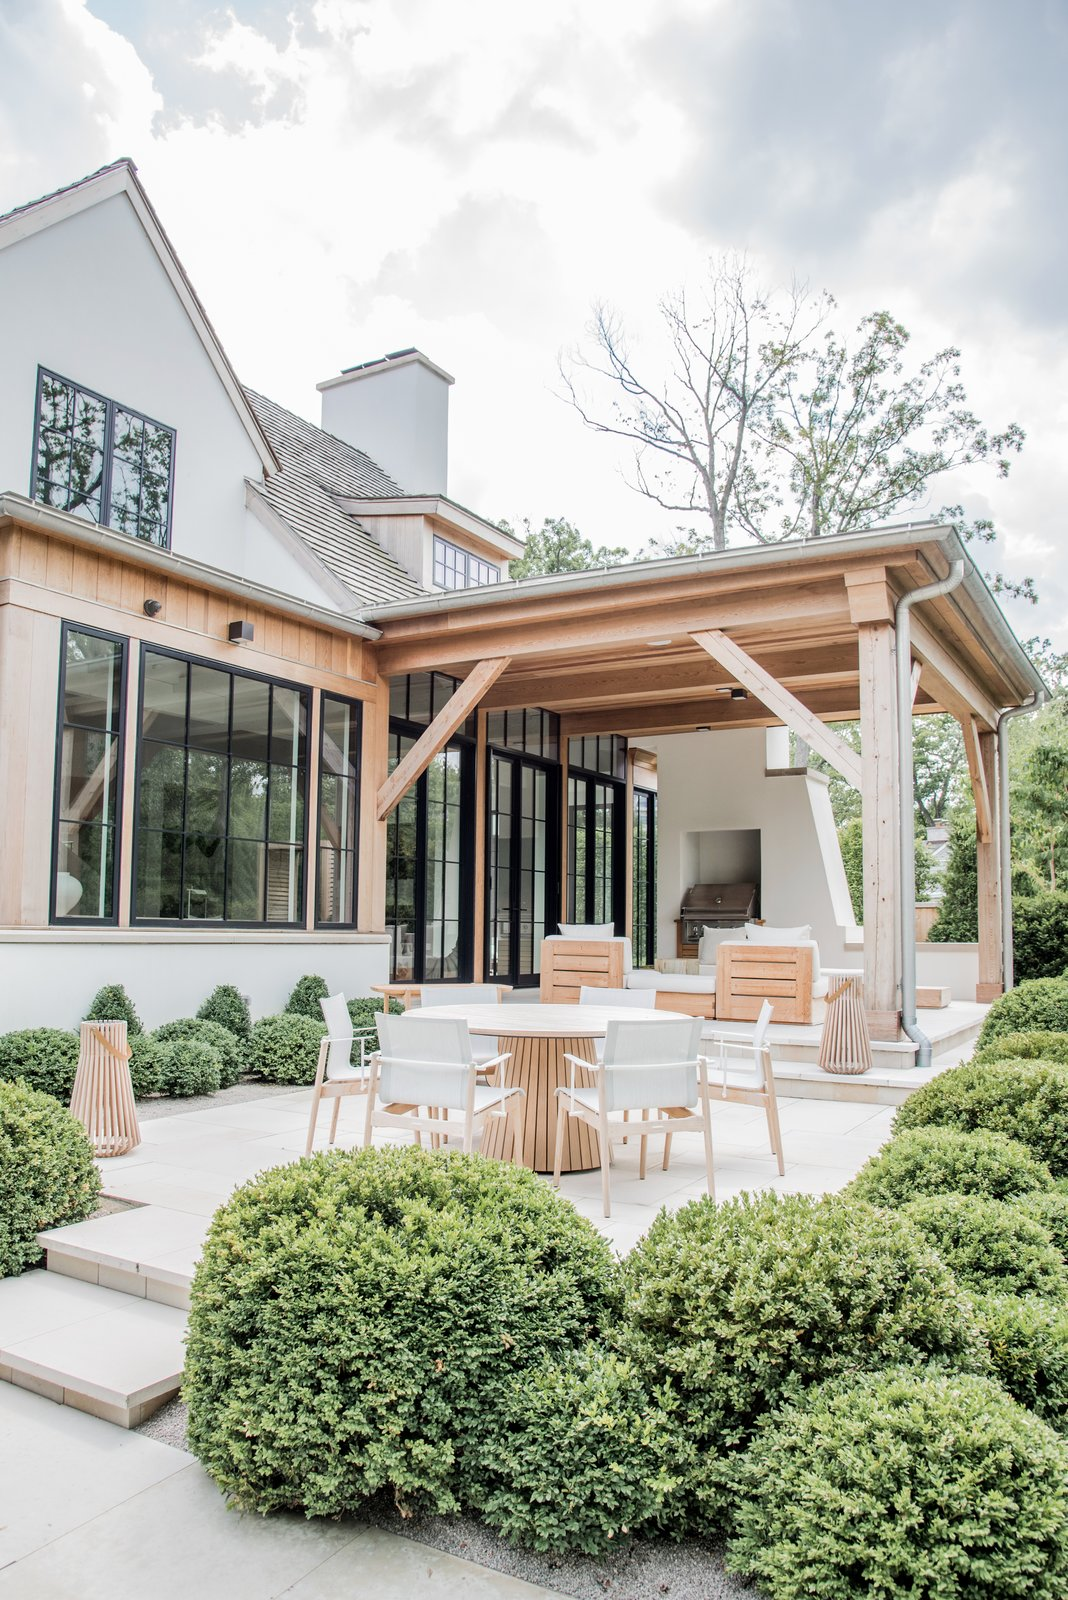 Outdoor, Back Yard, Concrete Patio, Porch, Deck, Trees, Large Patio, Porch, Deck, Gardens, Landscape Lighting, Grass, Shrubs, Garden, Planters Patio, Porch, Deck, and Walkways The indoor outdoor living is defined by large steel and glass doors that open to a covered barbecue area. The natural wood and white finishes are an extension of the home's interior design.  Beautiful Belgian-inspired Farmhouse